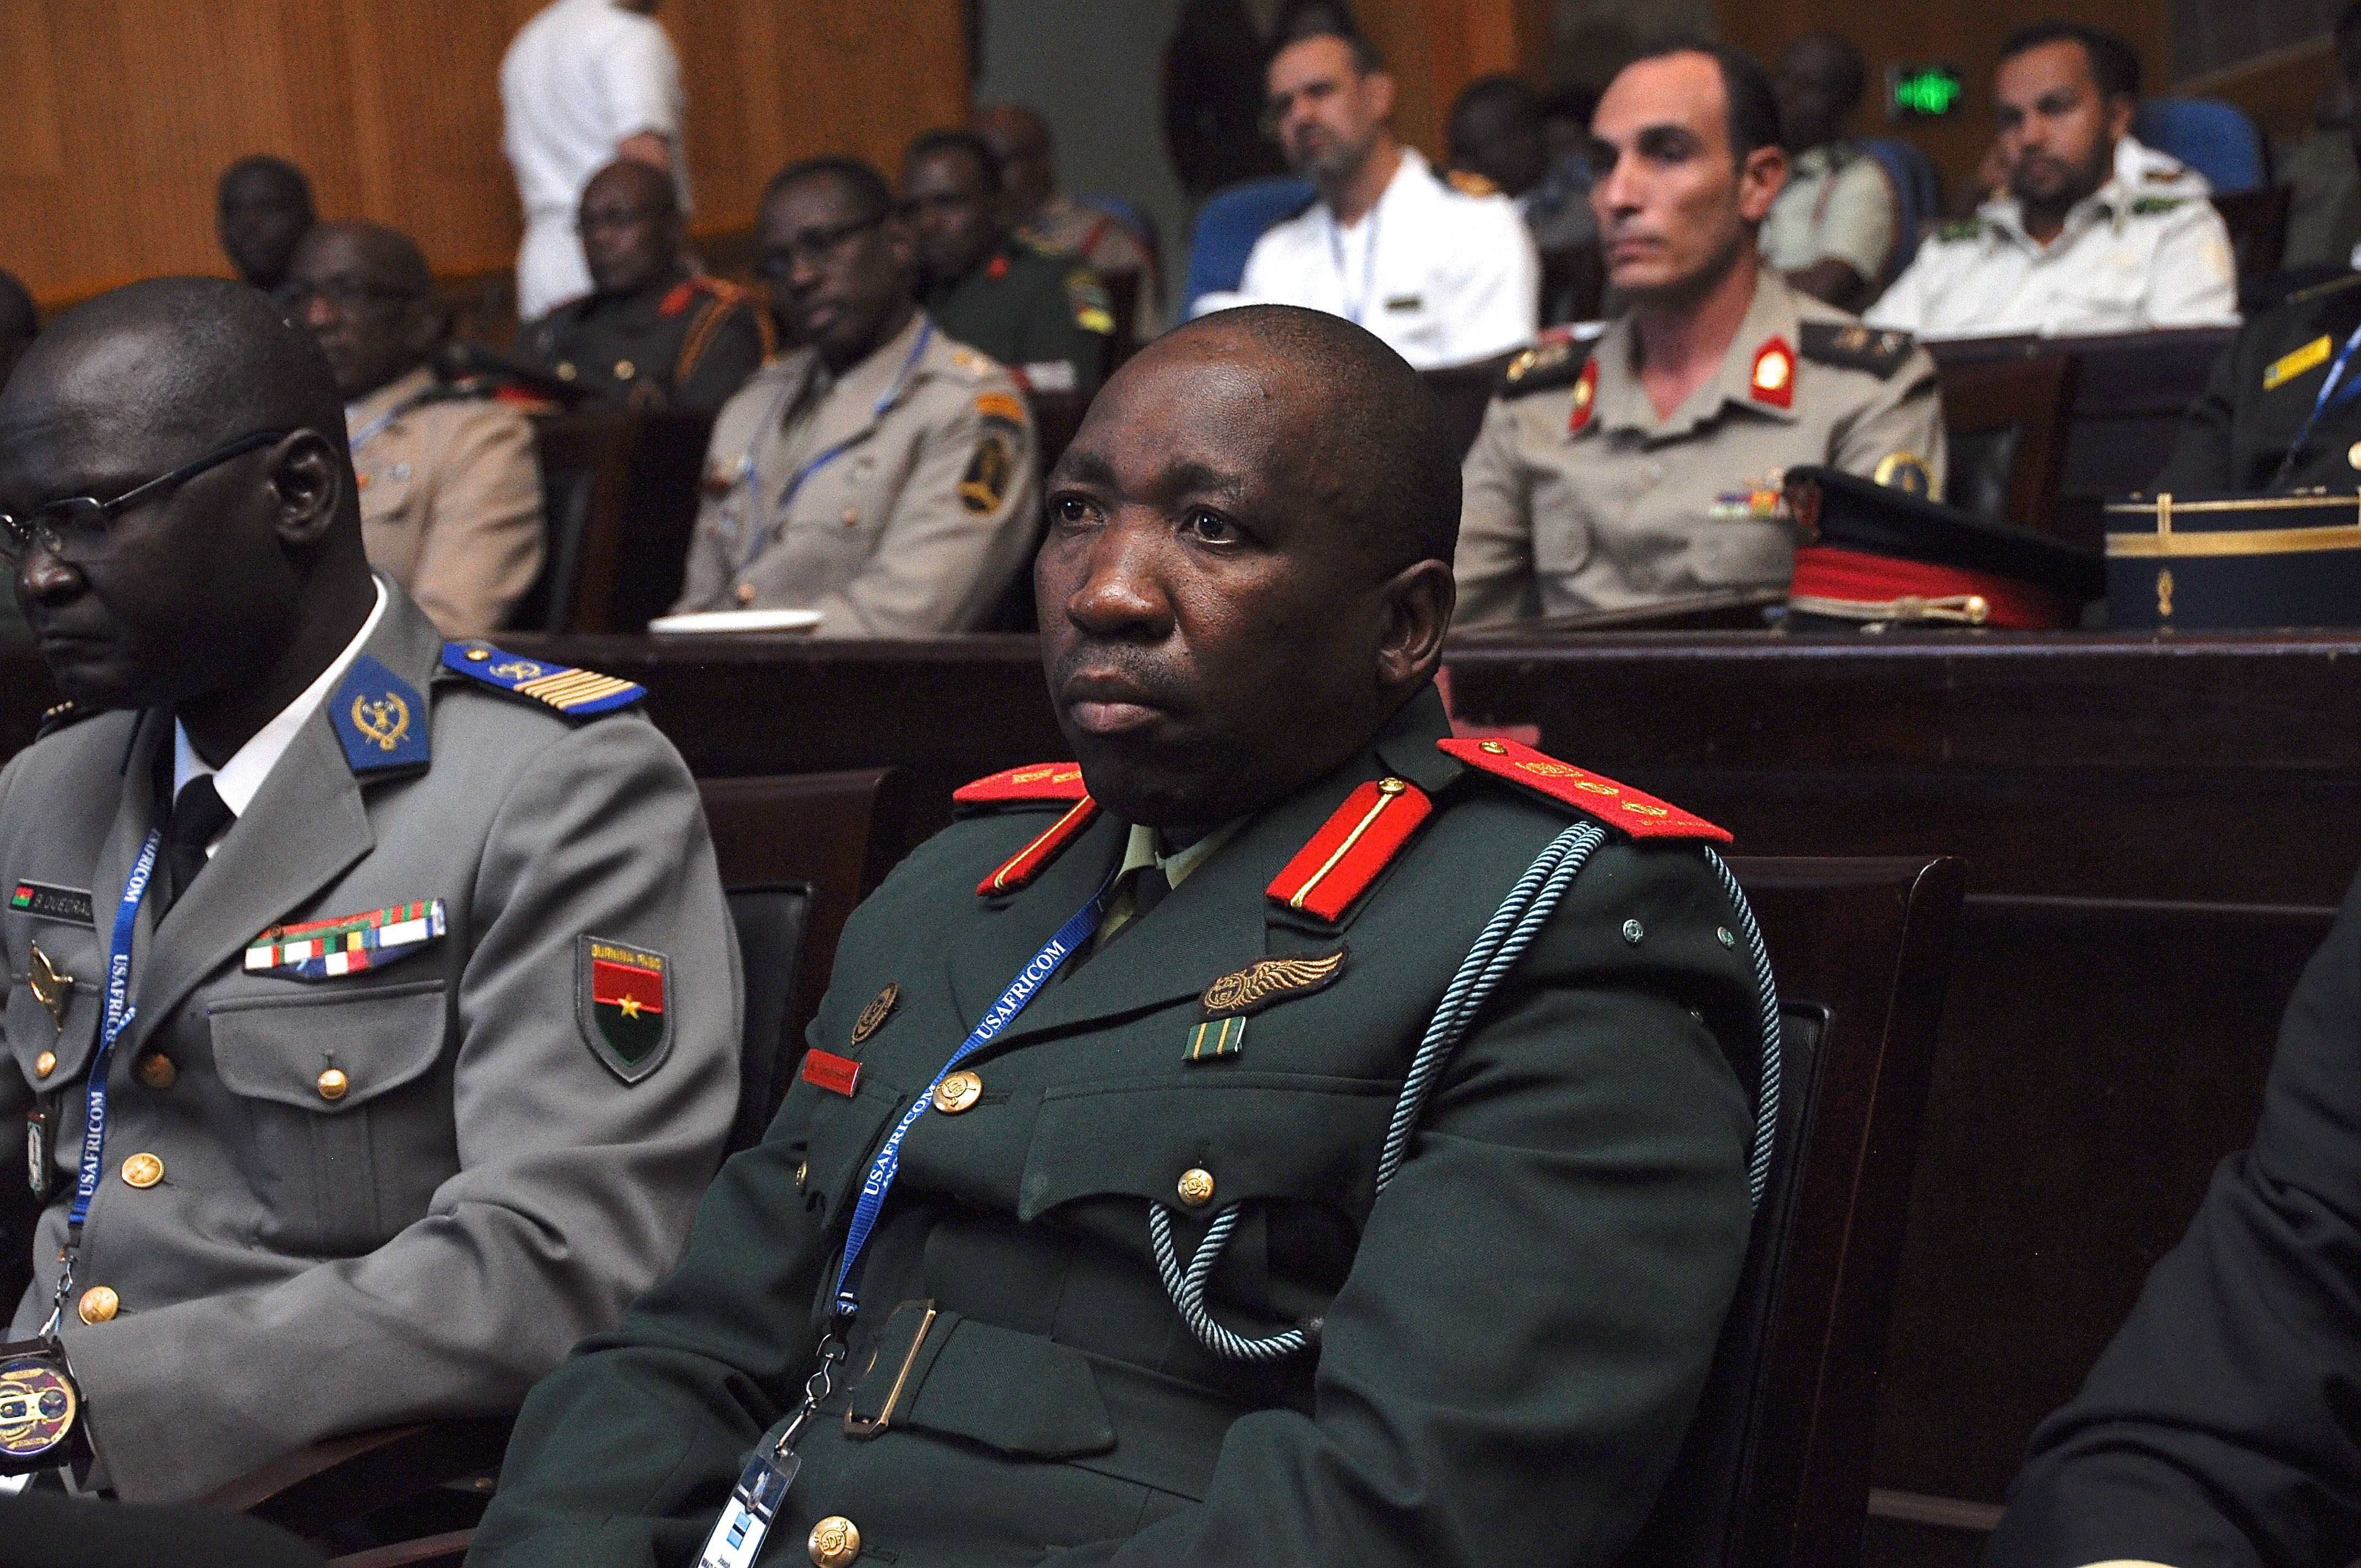 LILONGWE, Malawi (Aug. 25, 2017) -- A U.S. Africa Command (AFRICOM) partner from one of the more than 40 participating nations in Africa Endeavor 2017, sits in on the closing ceremony concluding the weeklong event in Lilongwe, Malawi. AE17 is an annual senior leader and communications symposium and technology expo designed to develop standardized, multinational communications practices for peacekeeping and disaster response missions mandated by the African Union and the United Nations. (Official Photo by U.S. Navy Mass Communication Specialist 2nd Class (SW/AW) Dominique Shelton/For Release.)